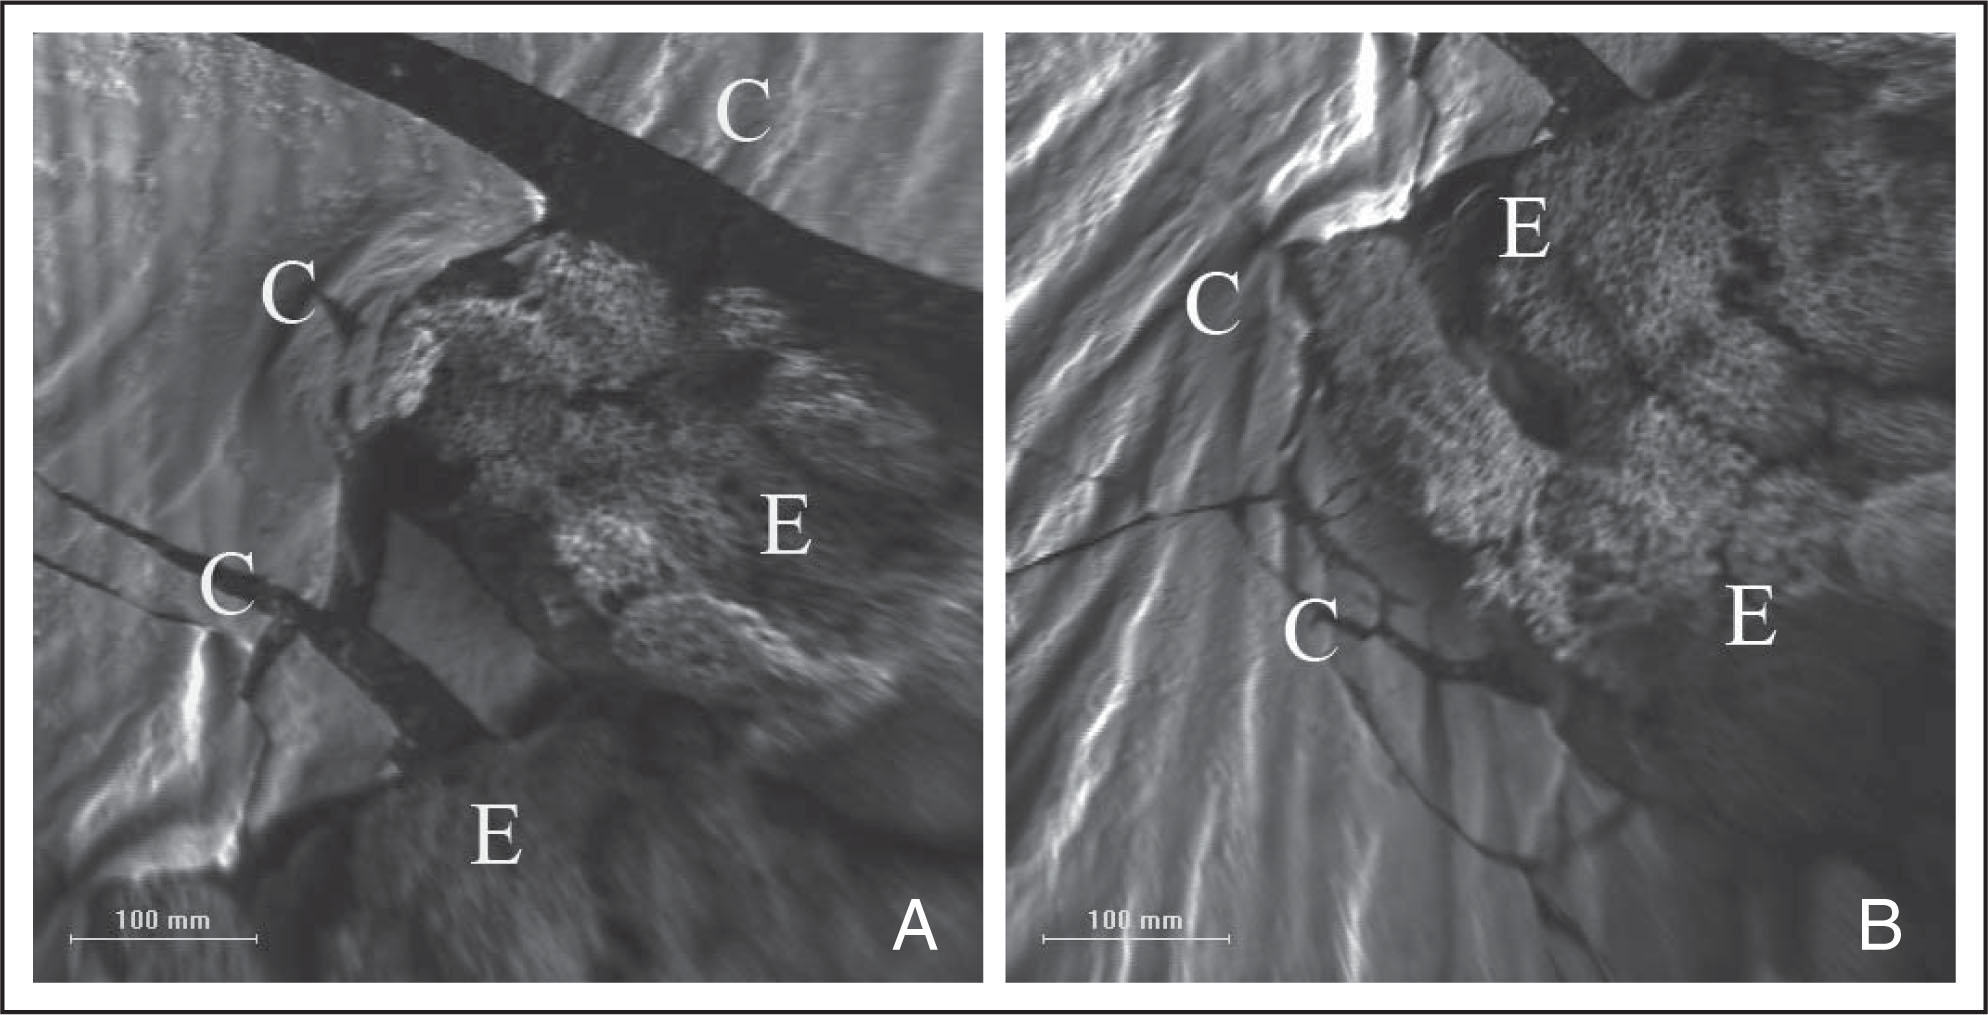 Scanning electron micrographs showing the islands of the remaining lens epithelial cells (E) on the posterior surface of the residual anterior lens capsule (C) in the (A) silicone oil tamponade group and (B) control group.